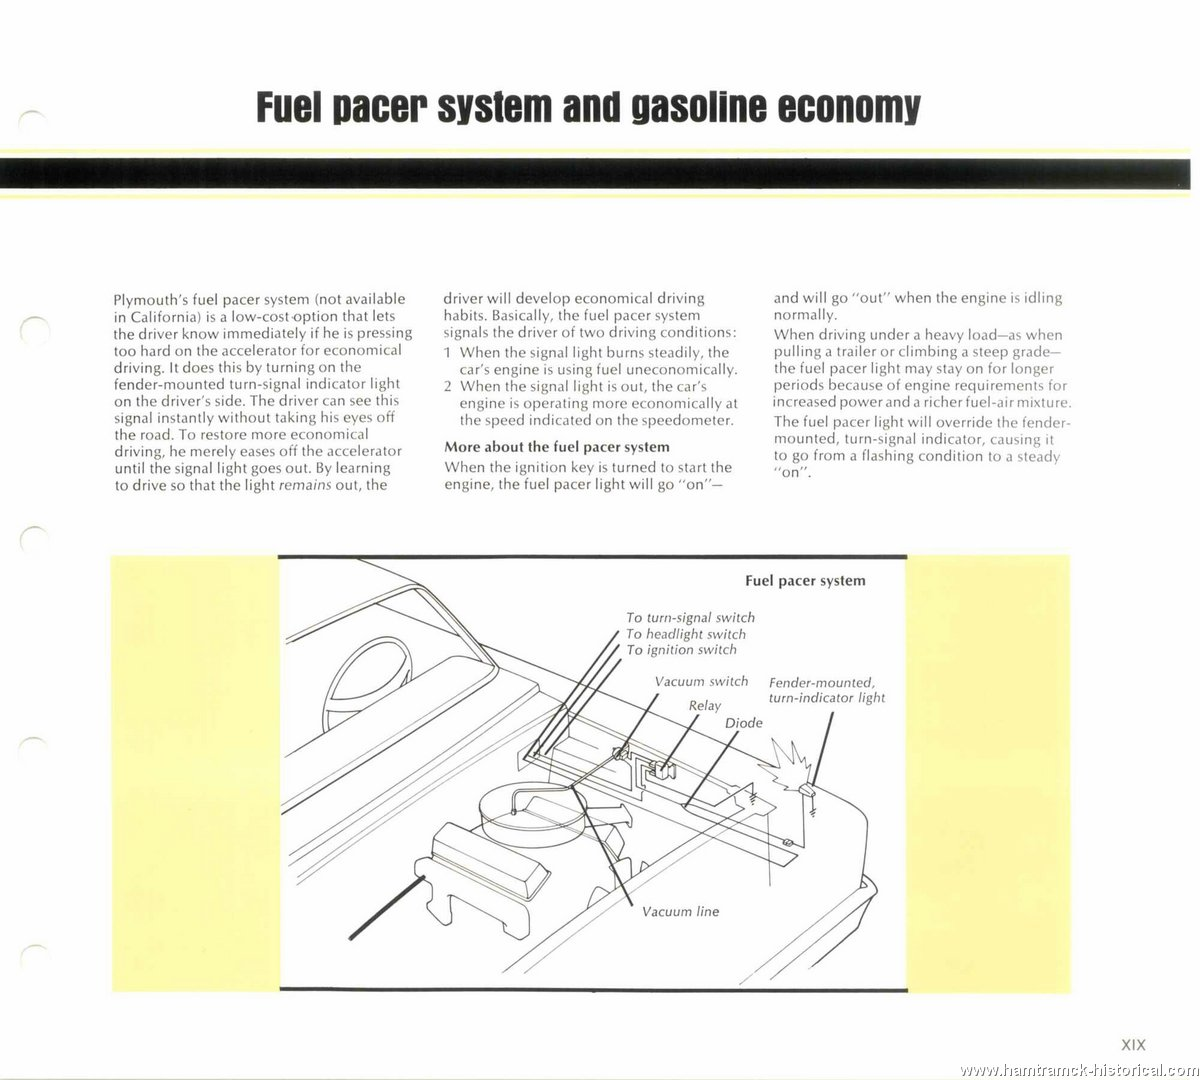 The 1970 Hamtramck Registry 1976 Plymouth Dealership Data Book Pacer Light Bar Wiring Diagram Image 76 Engineering 0017